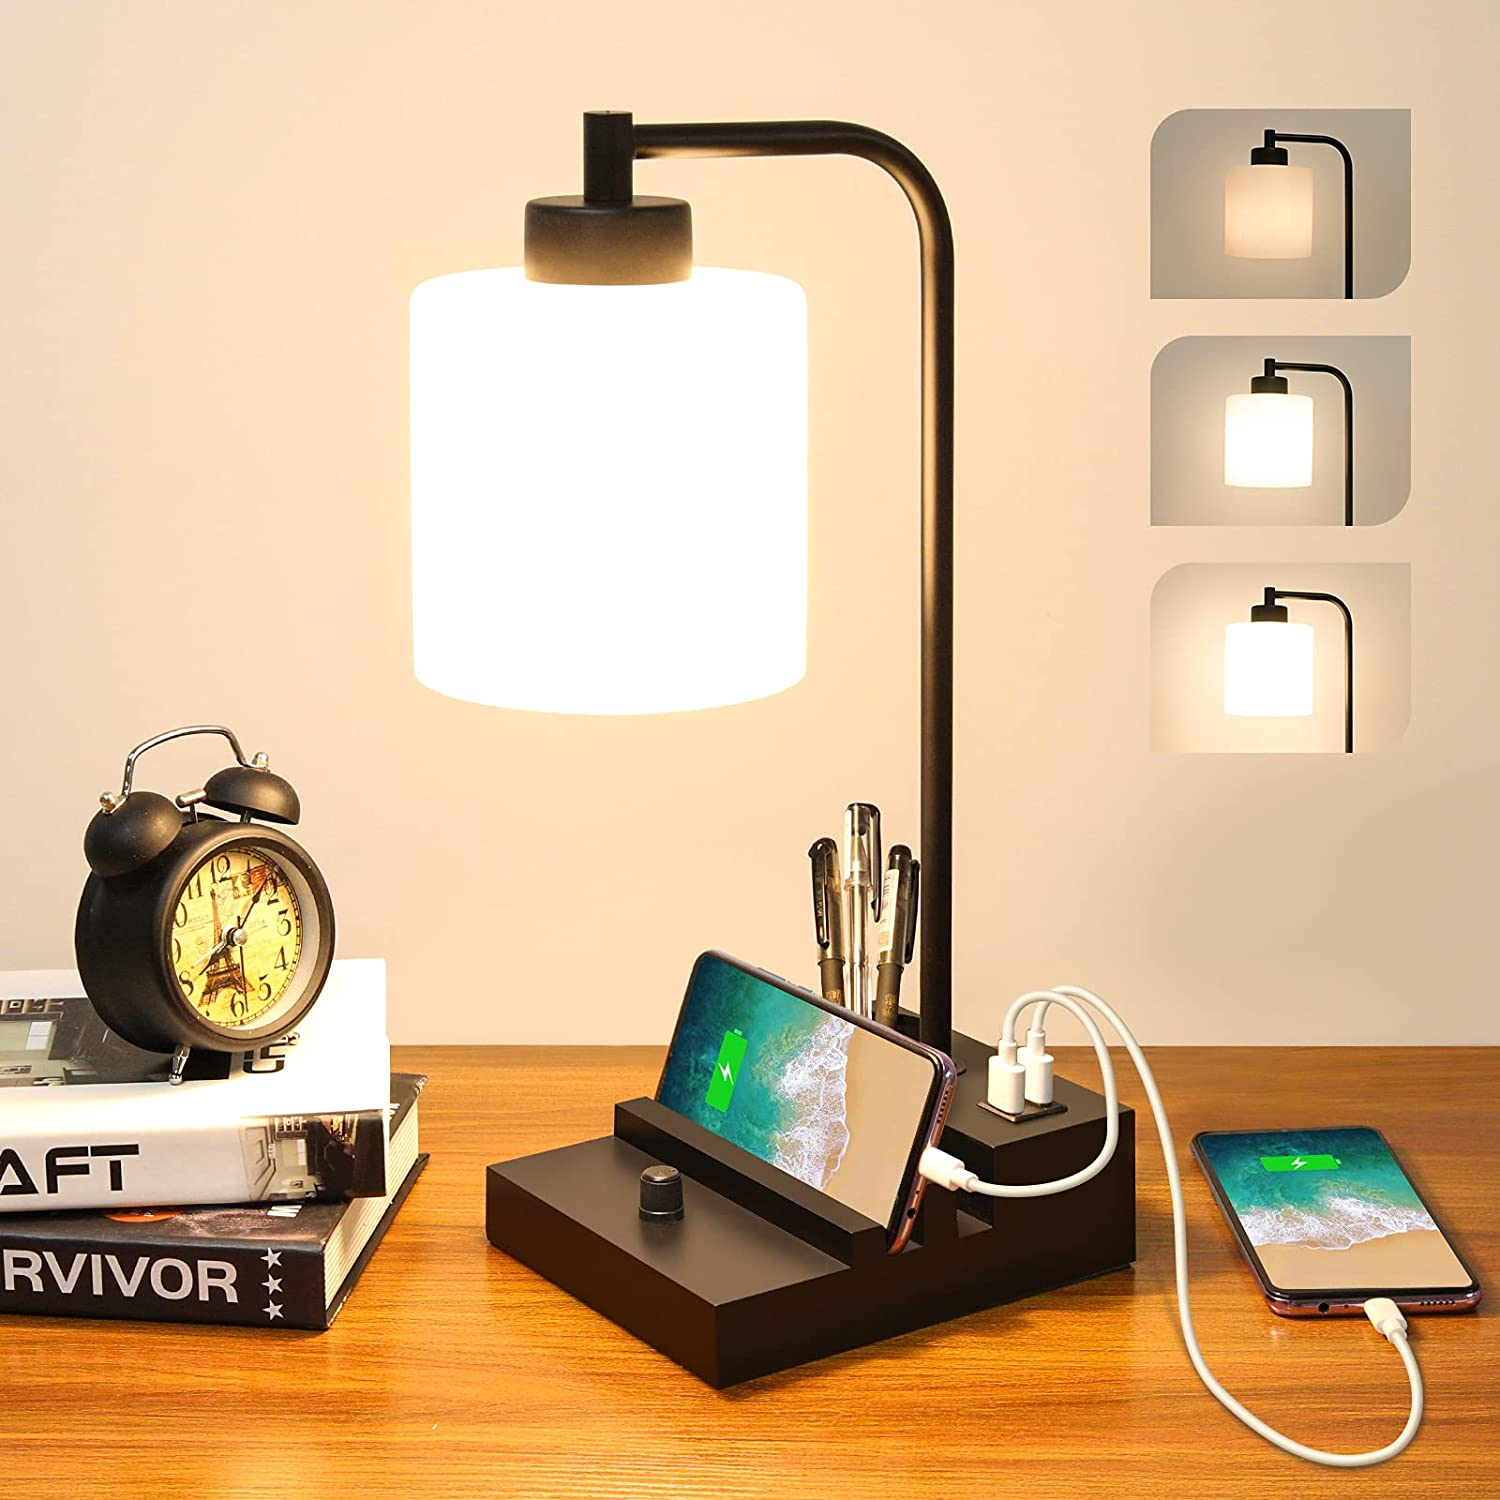 Dimmable Bedside Lamp, Table Lamp with Dual USB Ports & Dual Phone Stands, Industrial Desk Lamp Opal Glass Shade, Modern Nightstand Lamp for Bedroom Living Room Office, 6W 3000K LED Bulb Included